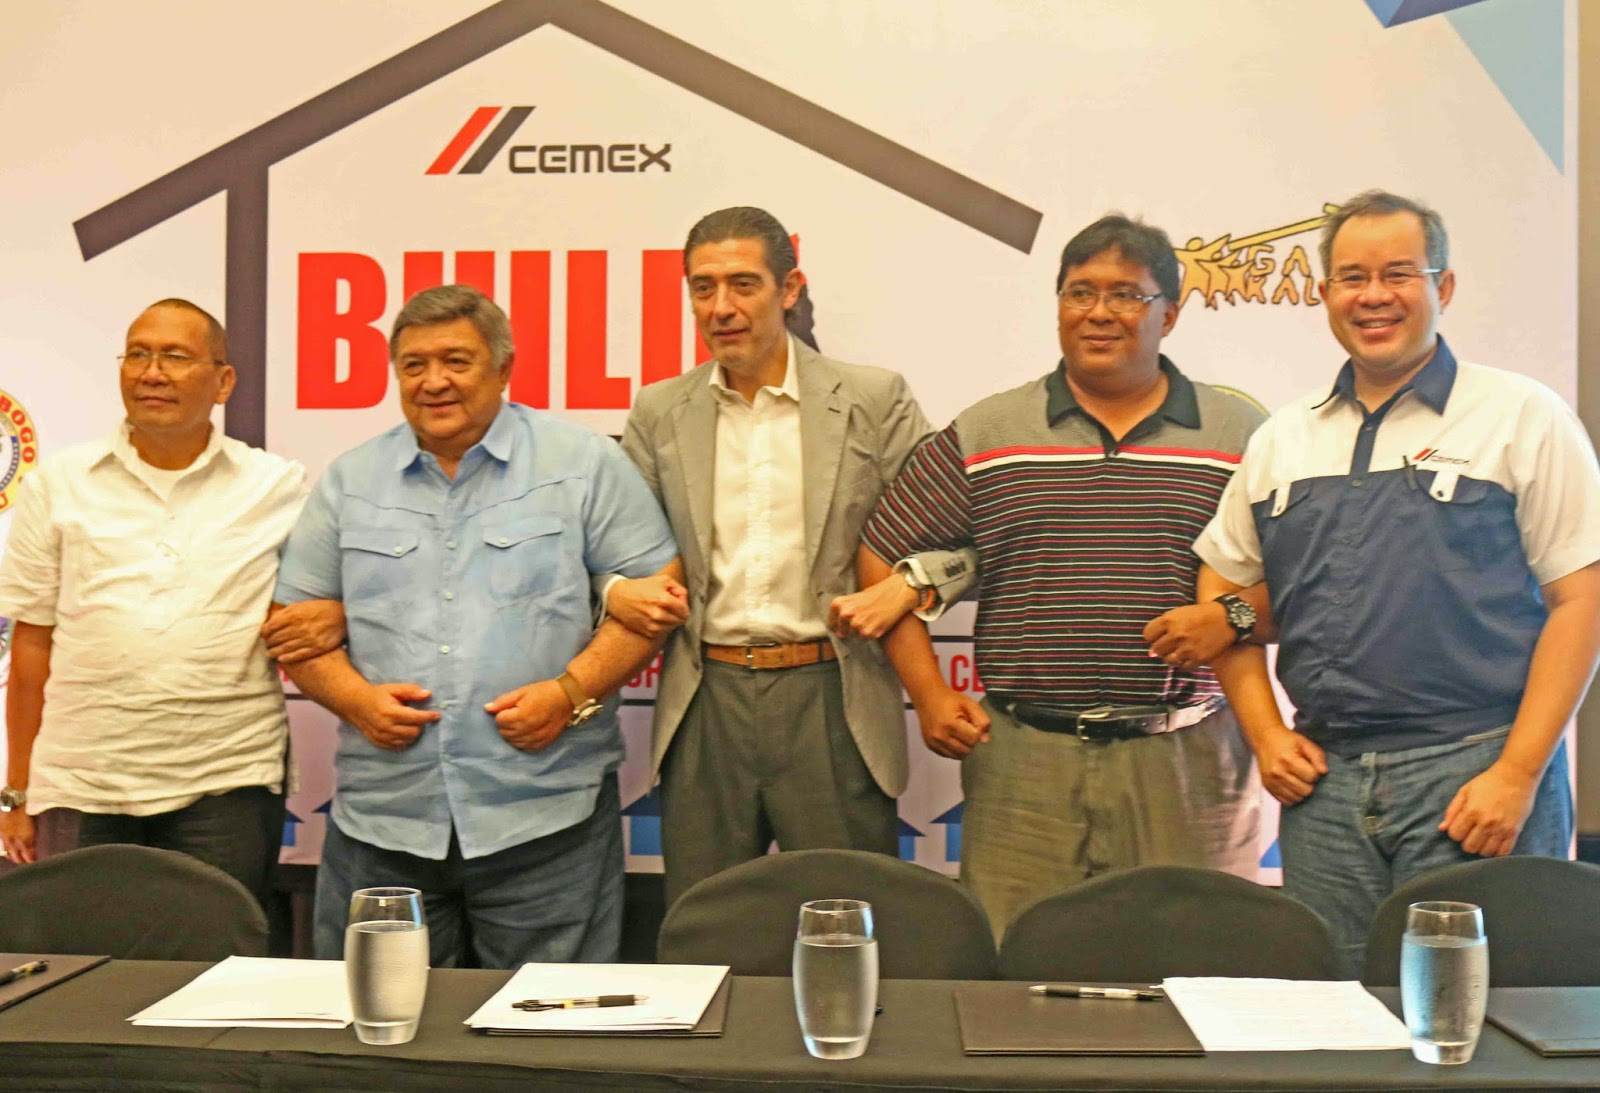 Cemex Philippines Build Unity - Bogo City